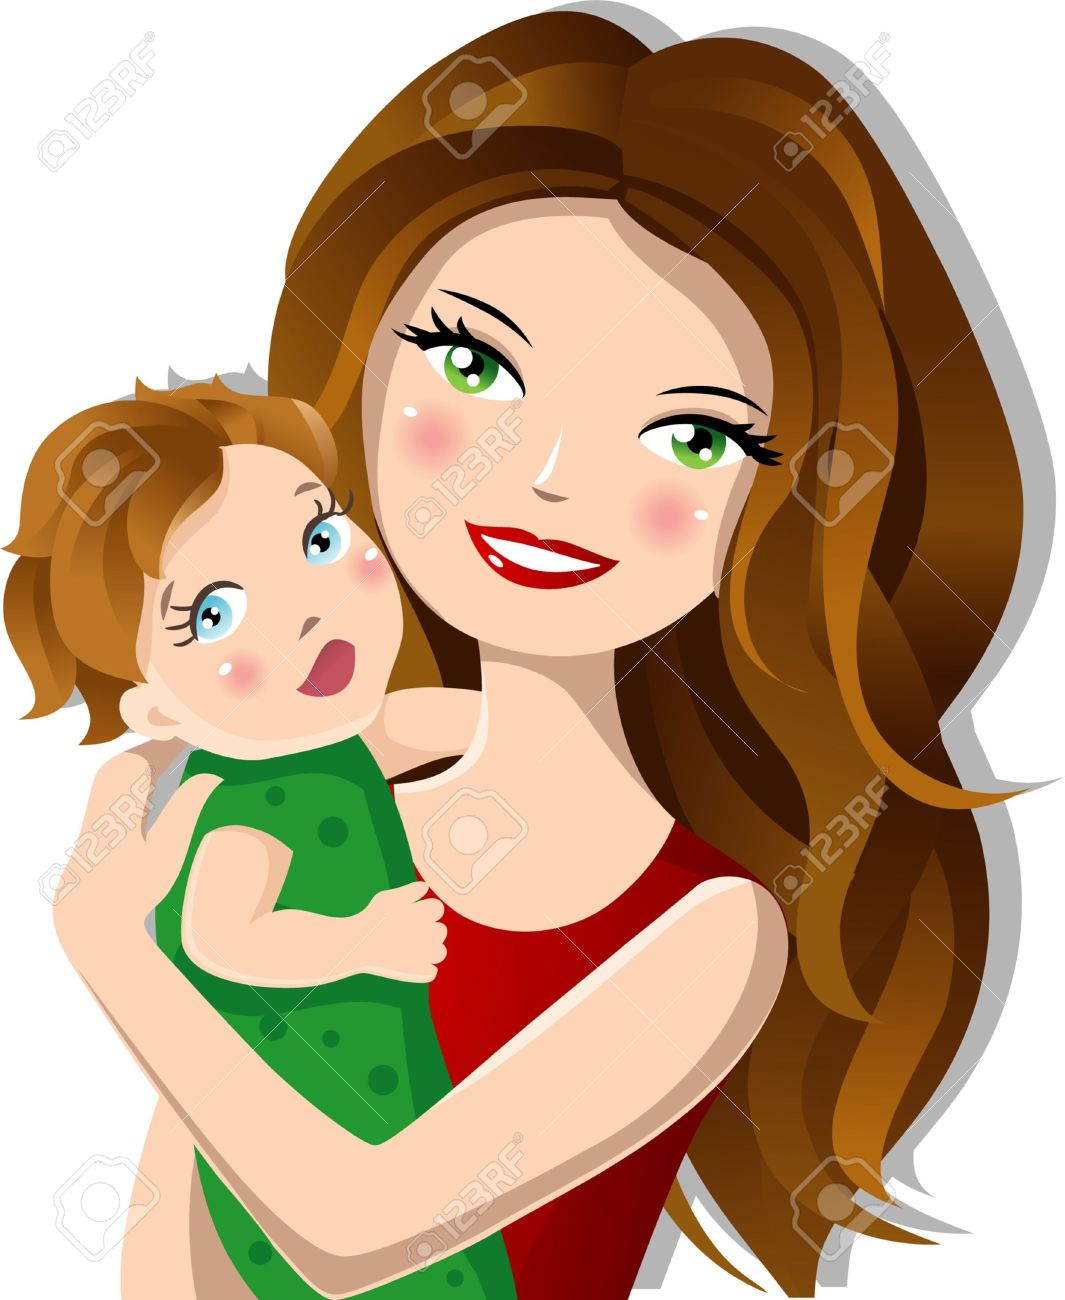 Mama mit baby clipart black and white download Mother Clip Art Images | Clipart Panda - Free Clipart Images black and white download